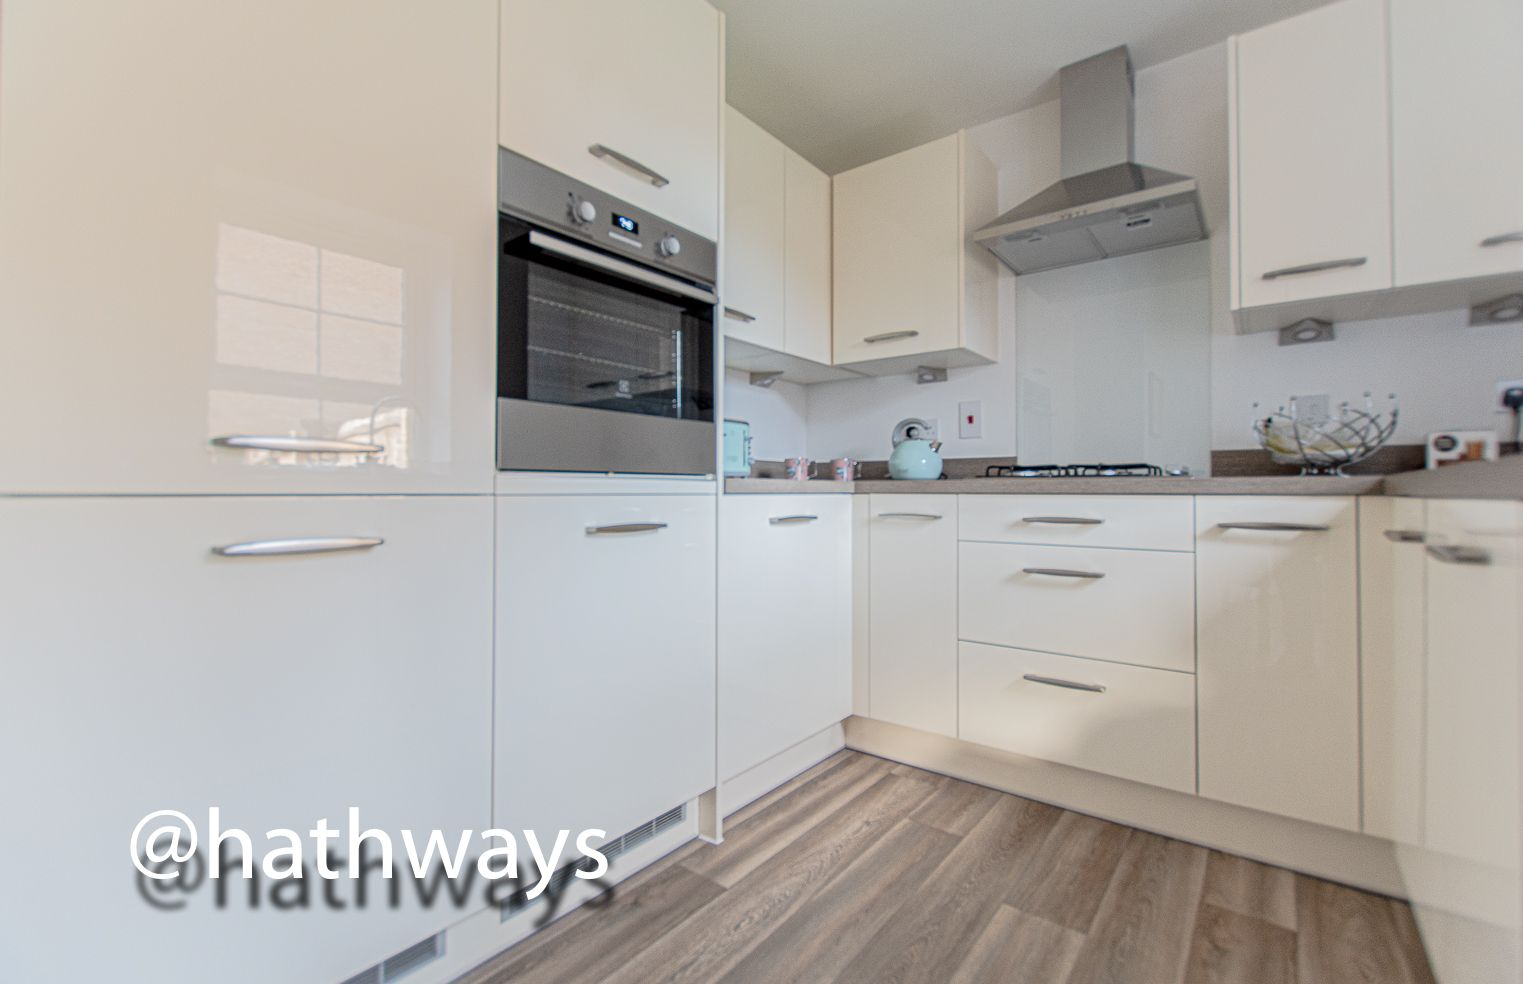 3 bed house for sale in James Prosser Way, NP44